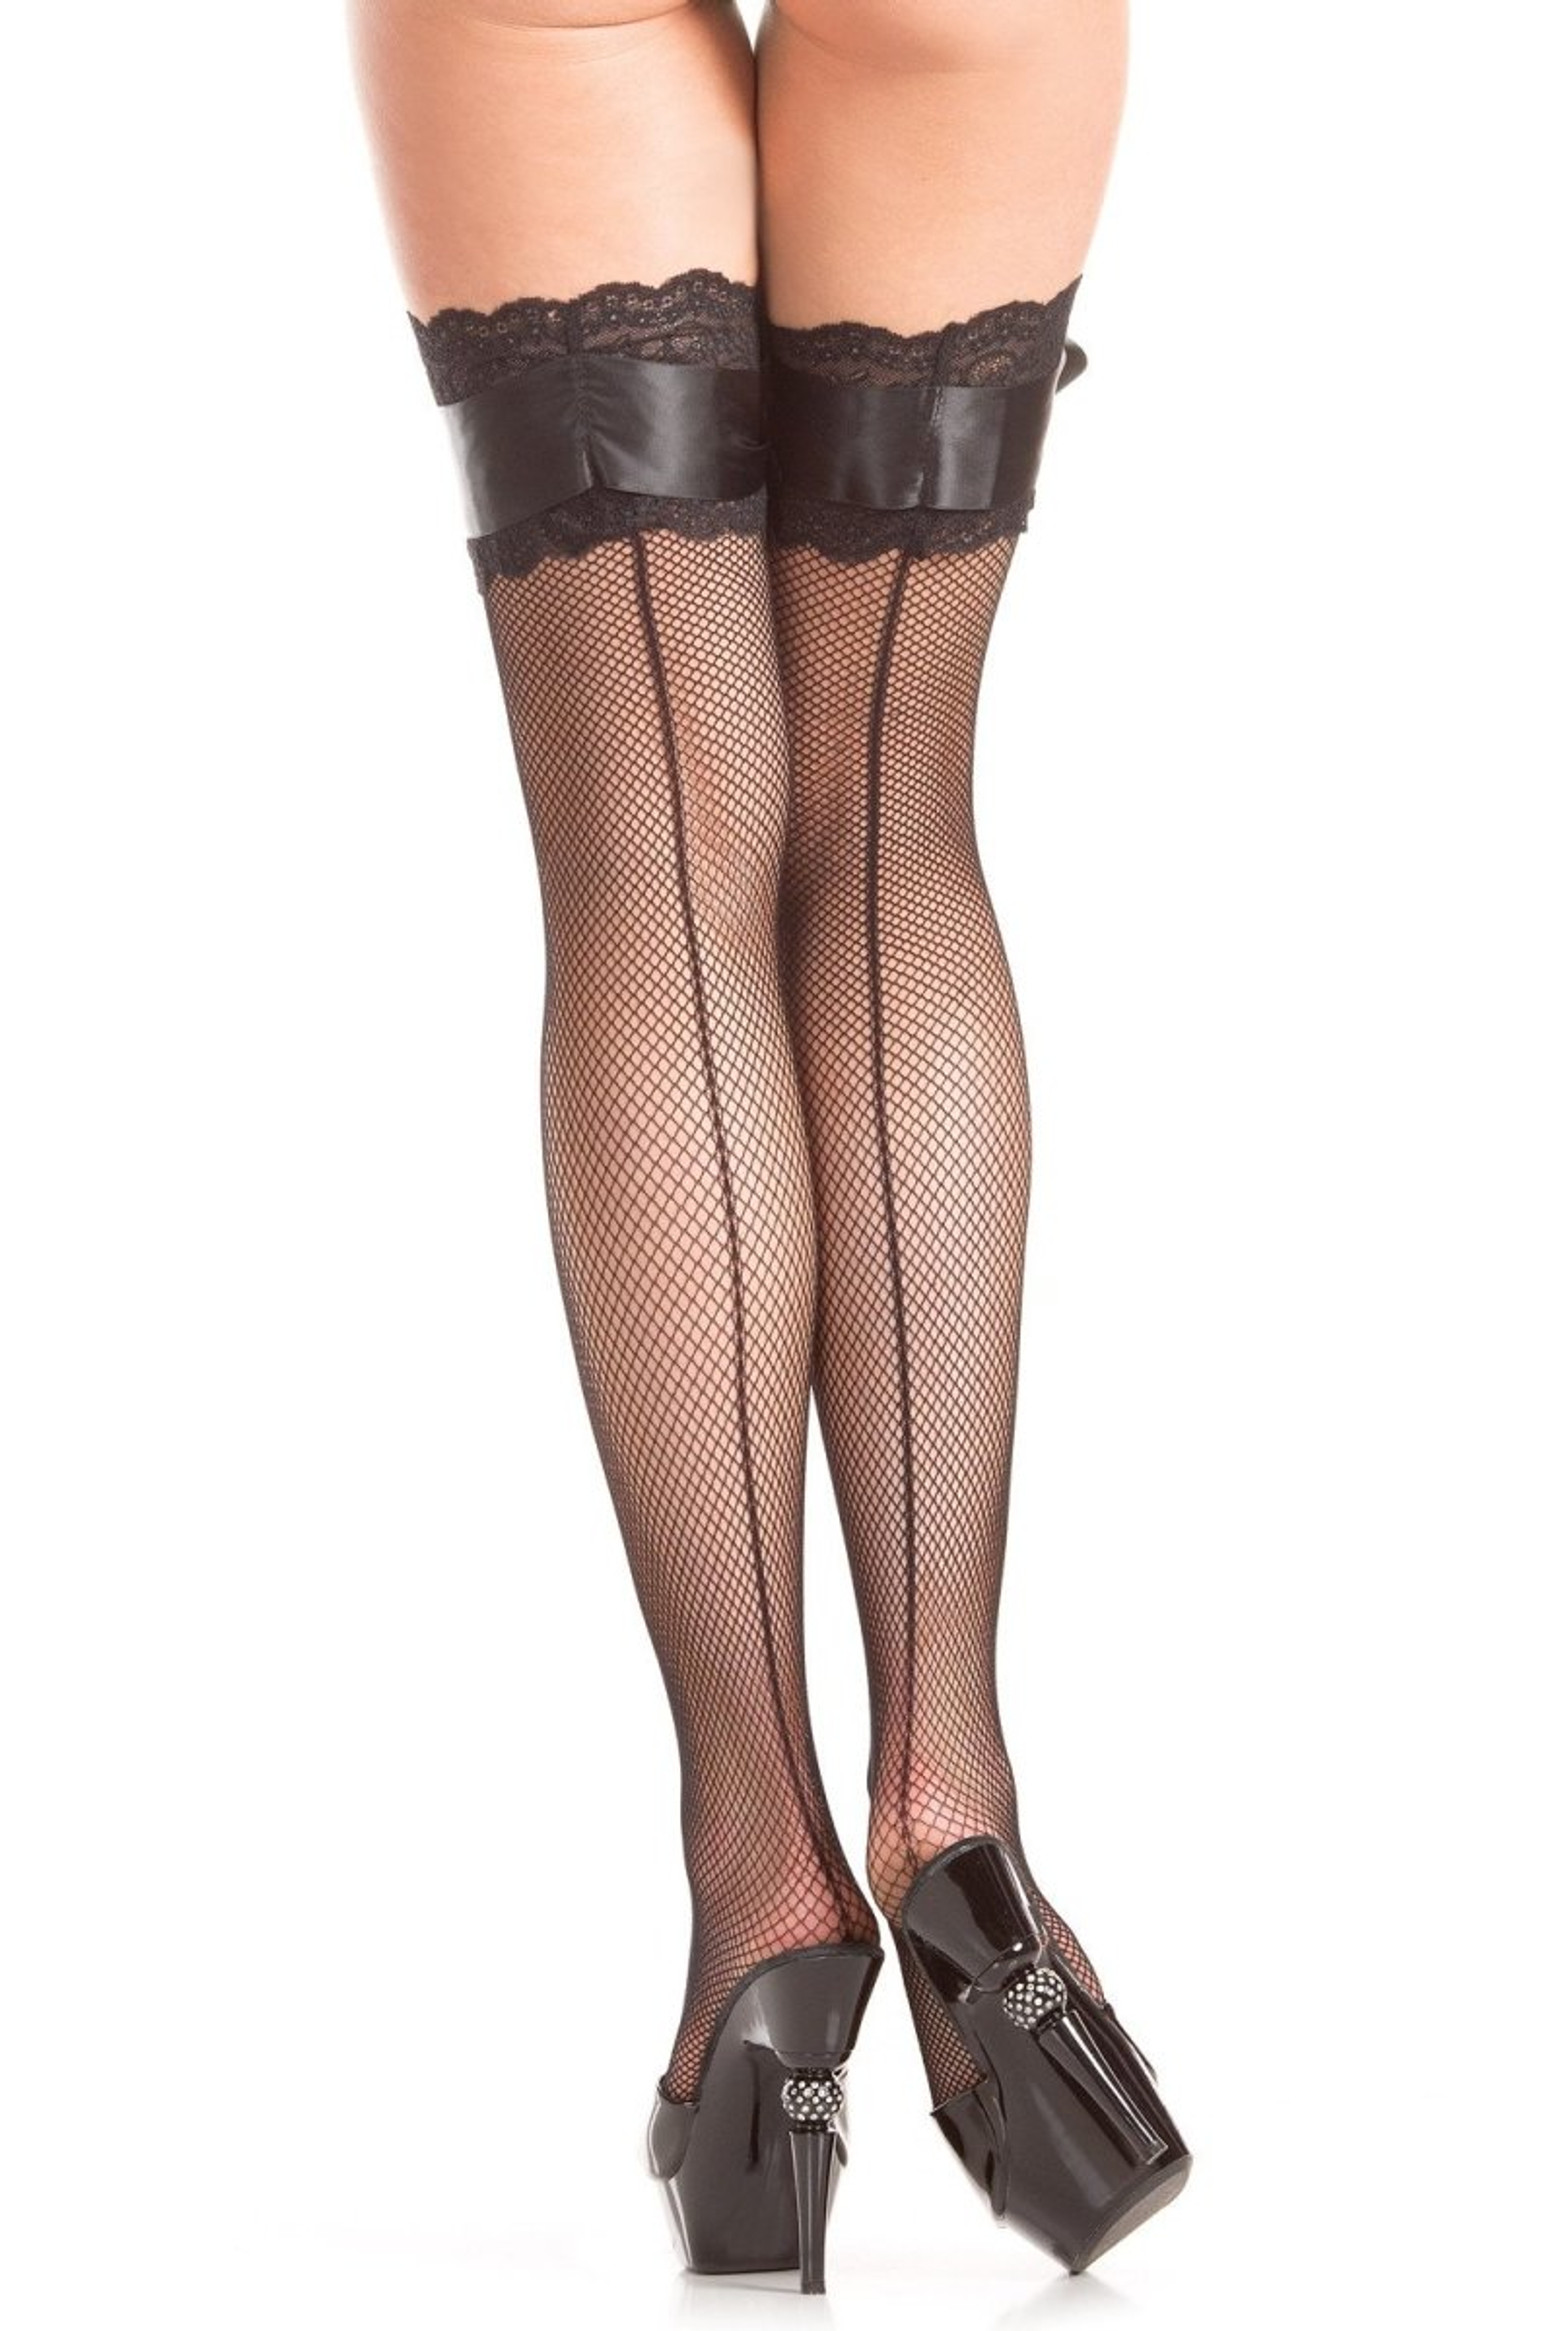 BW415 Bow And Arrow Thigh Highs